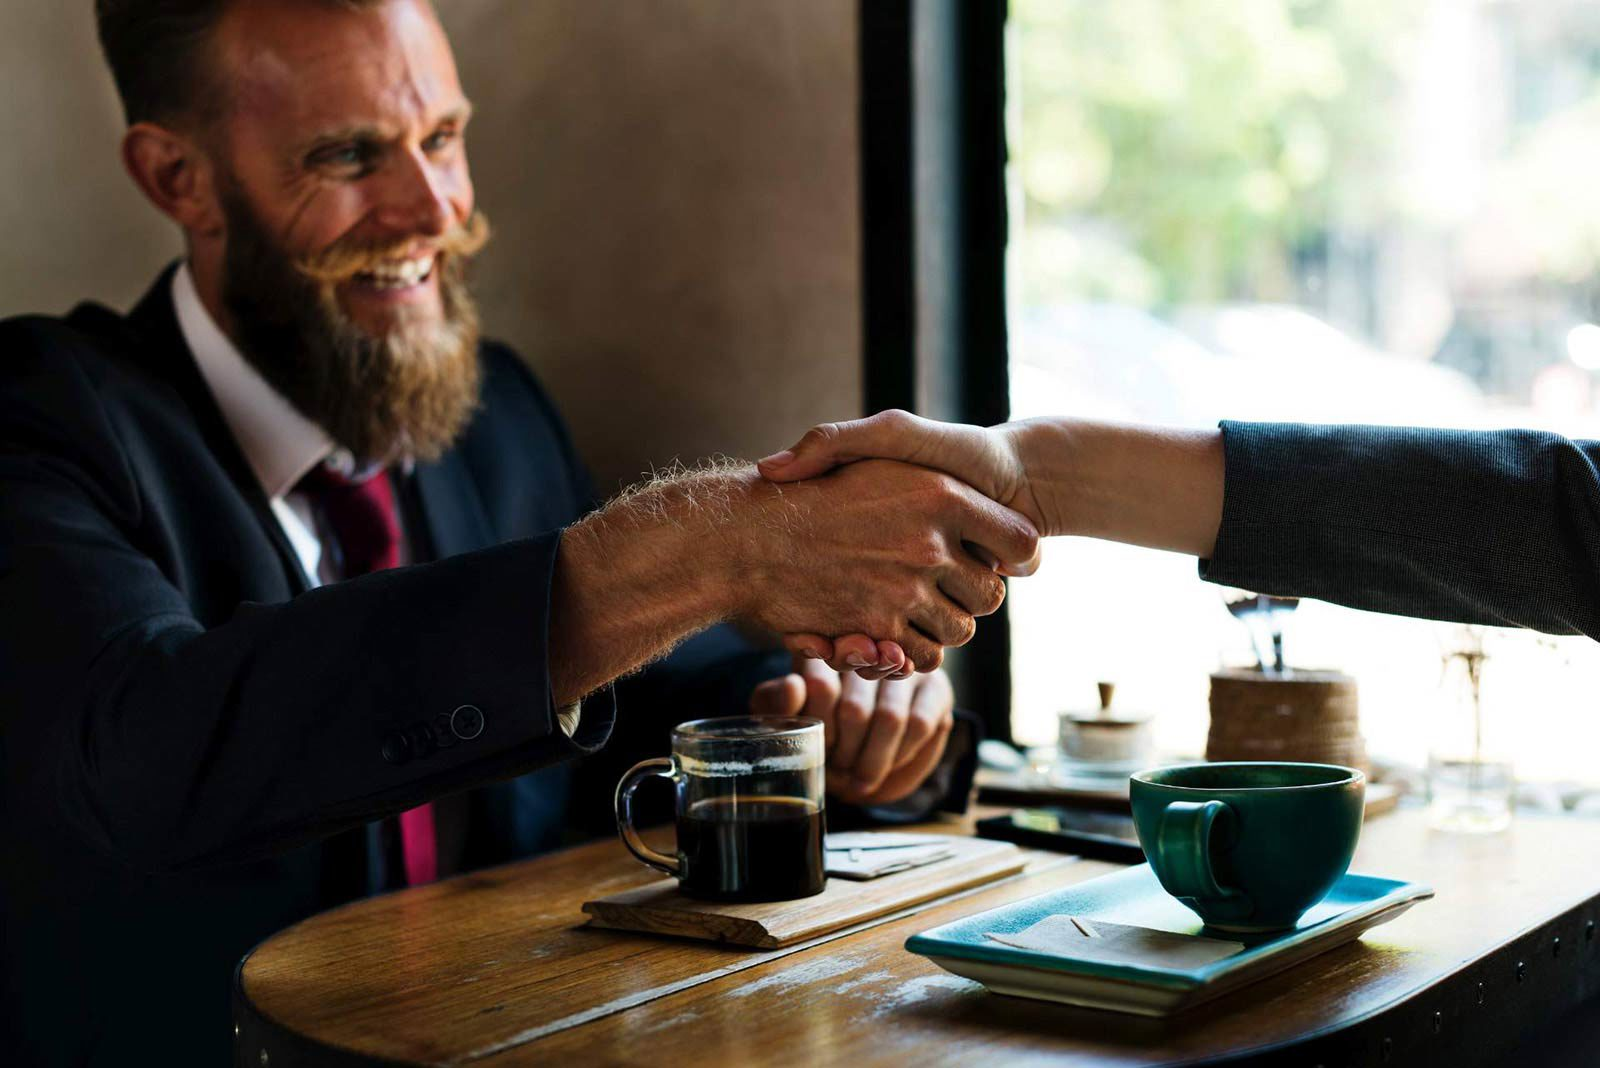 Man in suit with beard smiling shaking person's hand over coffee.